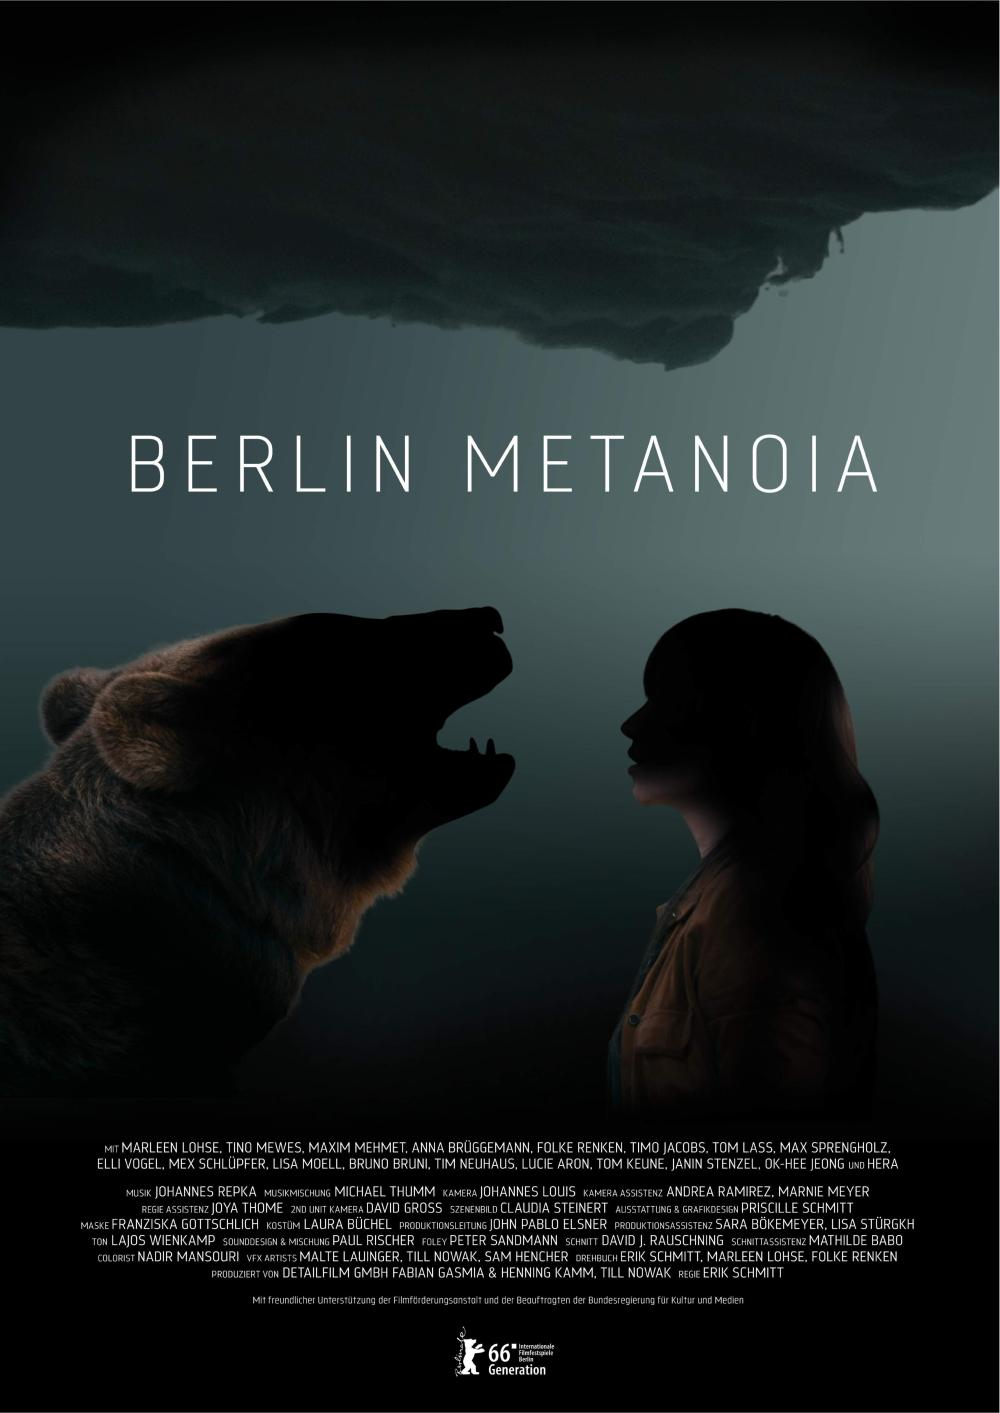 BERLIN_METANOIA_poster_A1_CMYK_160127.compressed-page-001